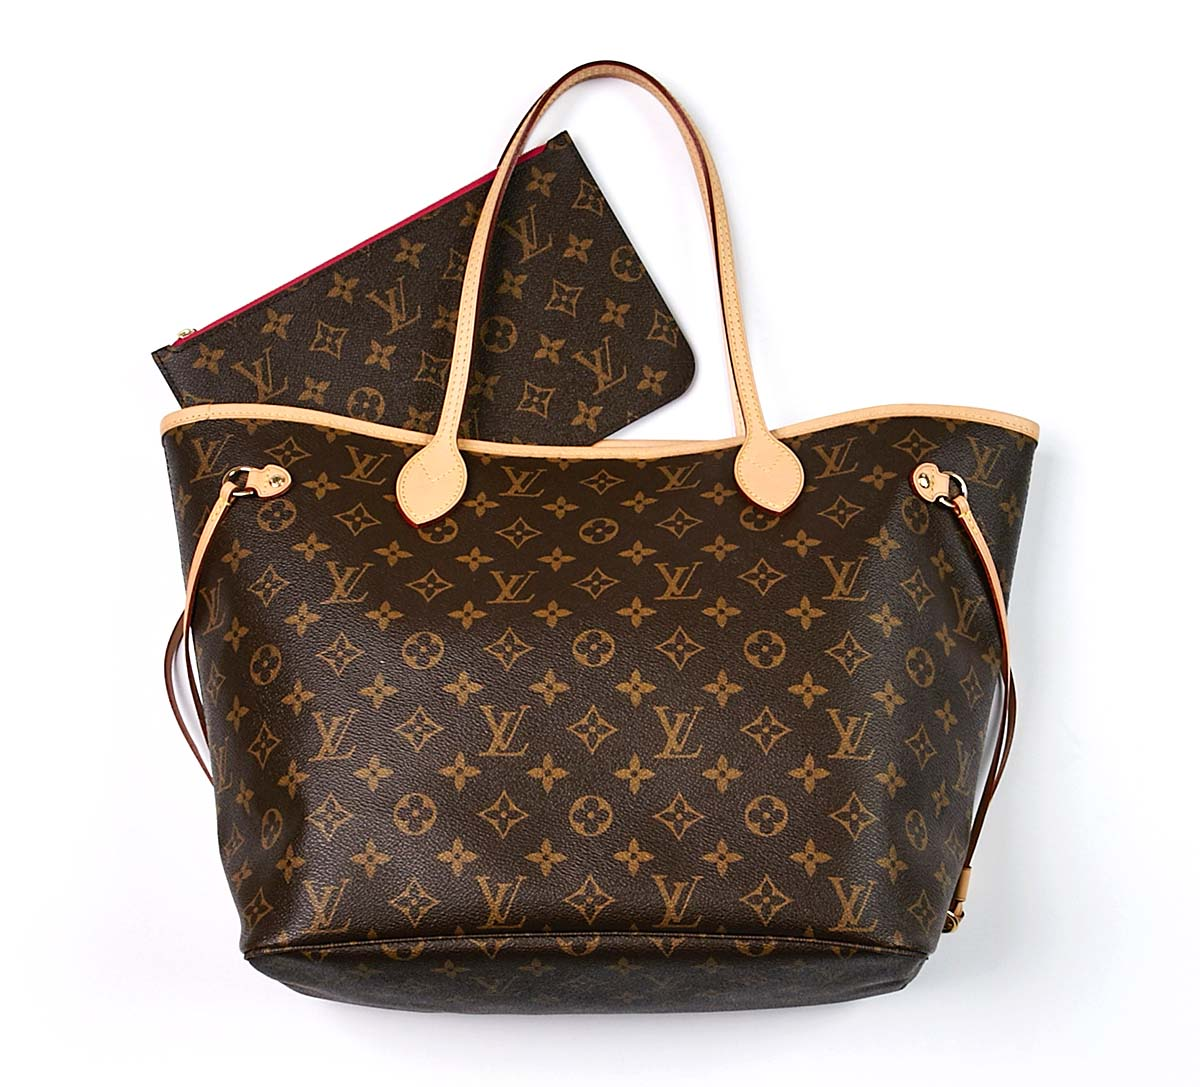 most popular louis vuitton bags